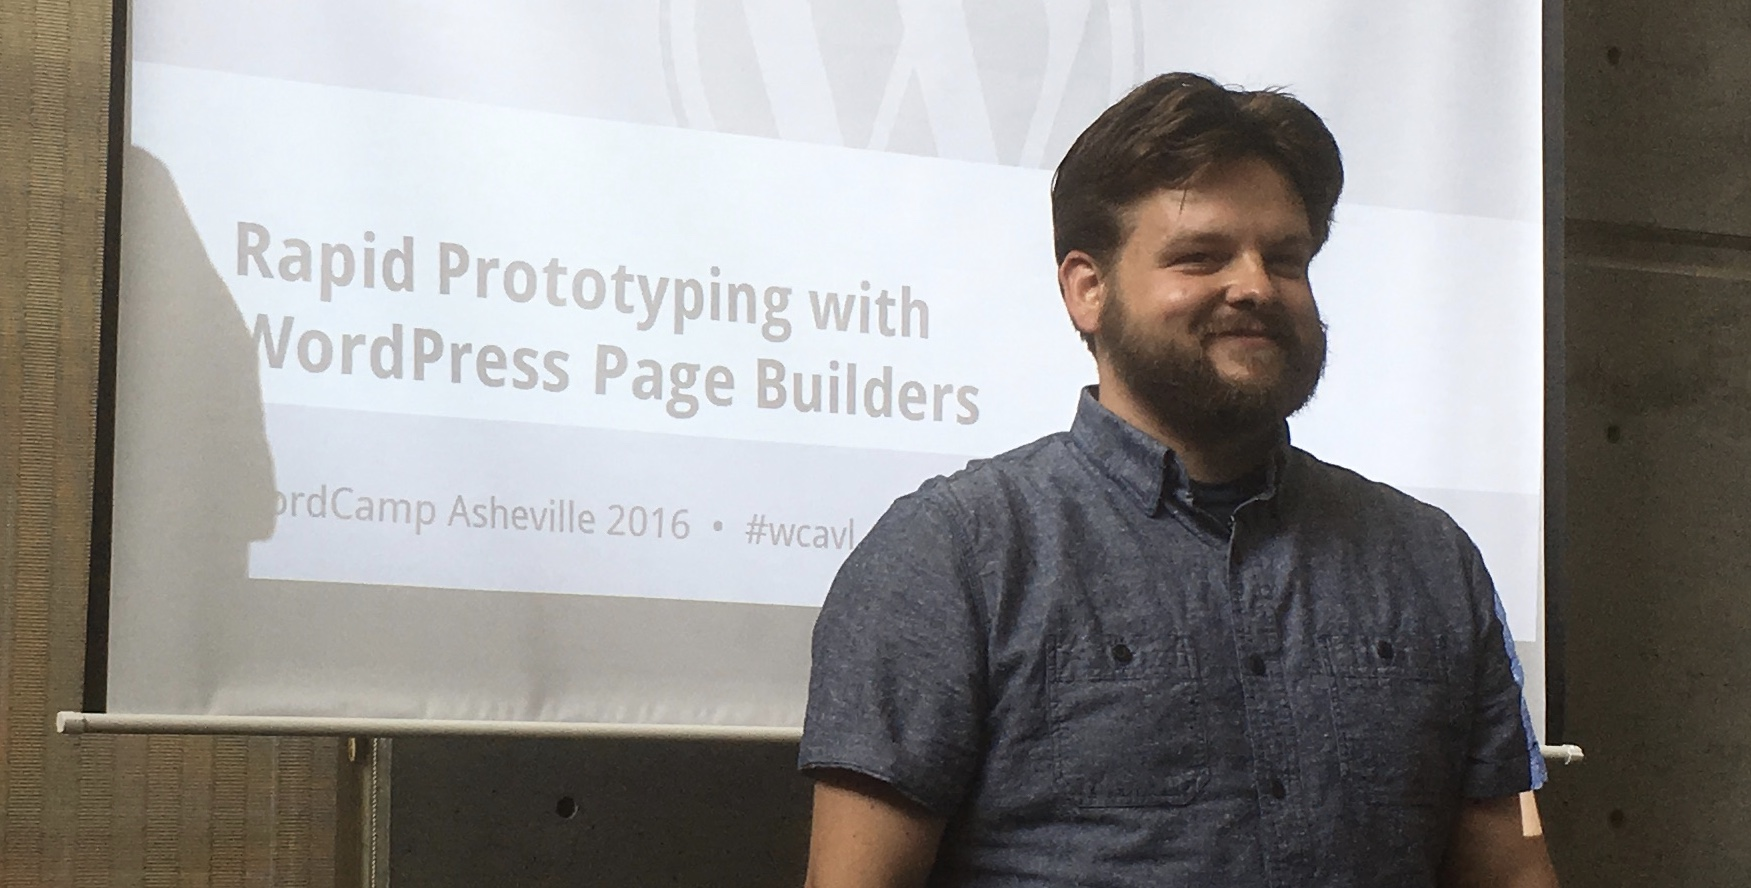 Rapid Prototyping With WordPress Page Builders